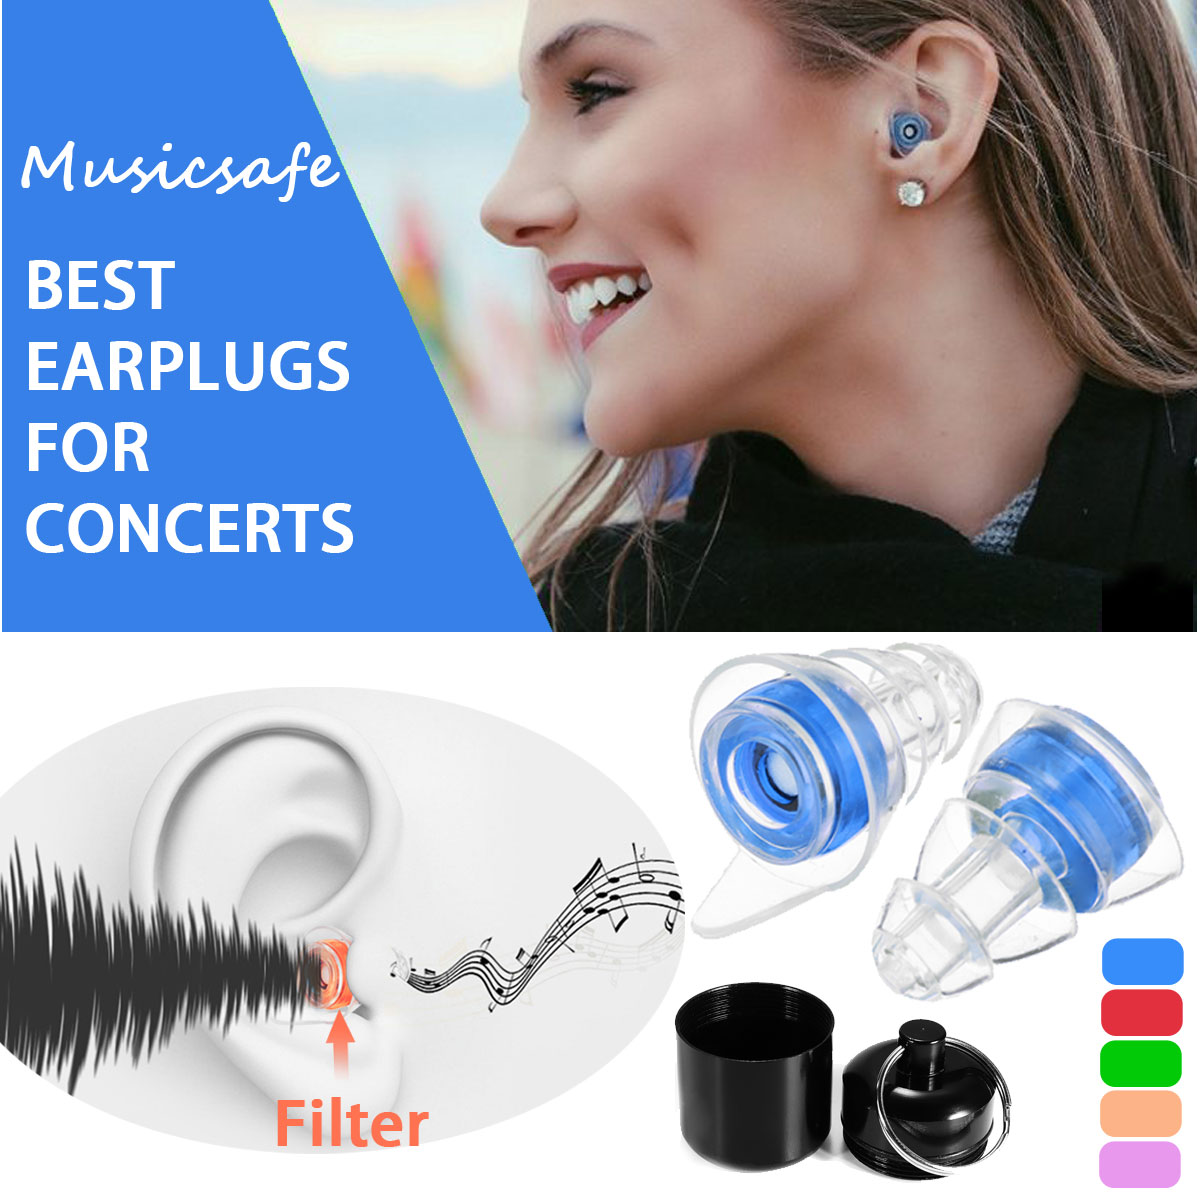 20db Silicone Ear Plug Sound Insulation Ear Protection Reusable Noise Music Reducing Cancelling Earplugs For Sleep Concerts20db Silicone Ear Plug Sound Insulation Ear Protection Reusable Noise Music Reducing Cancelling Earplugs For Sleep Concerts